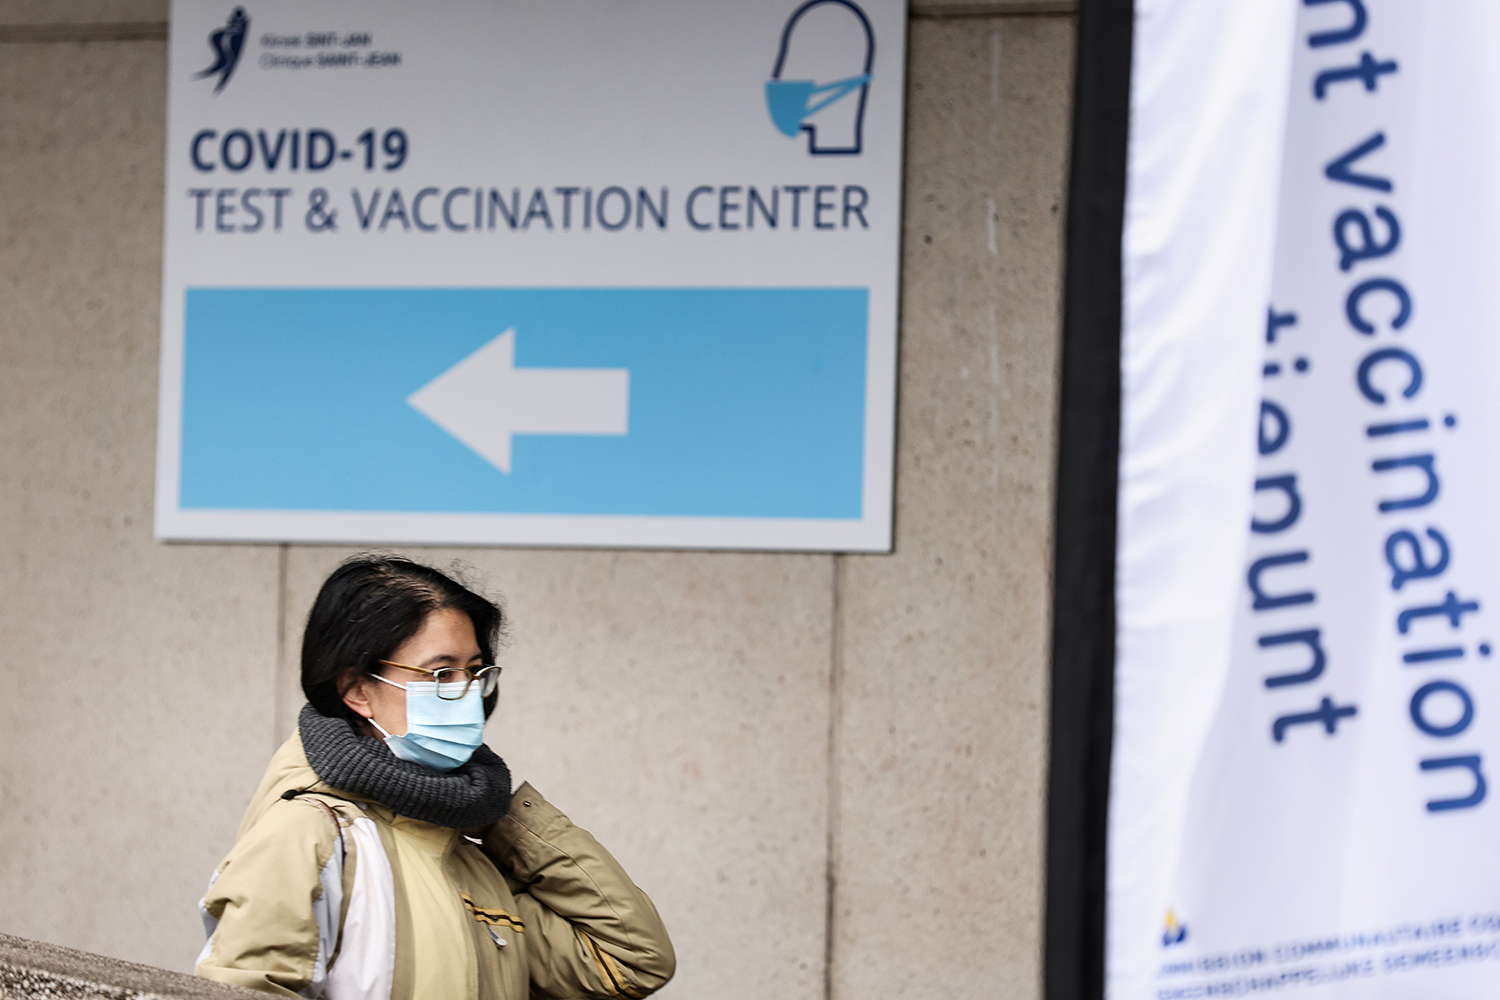 A woman leaves Belgium's first COVID-19 vaccination center